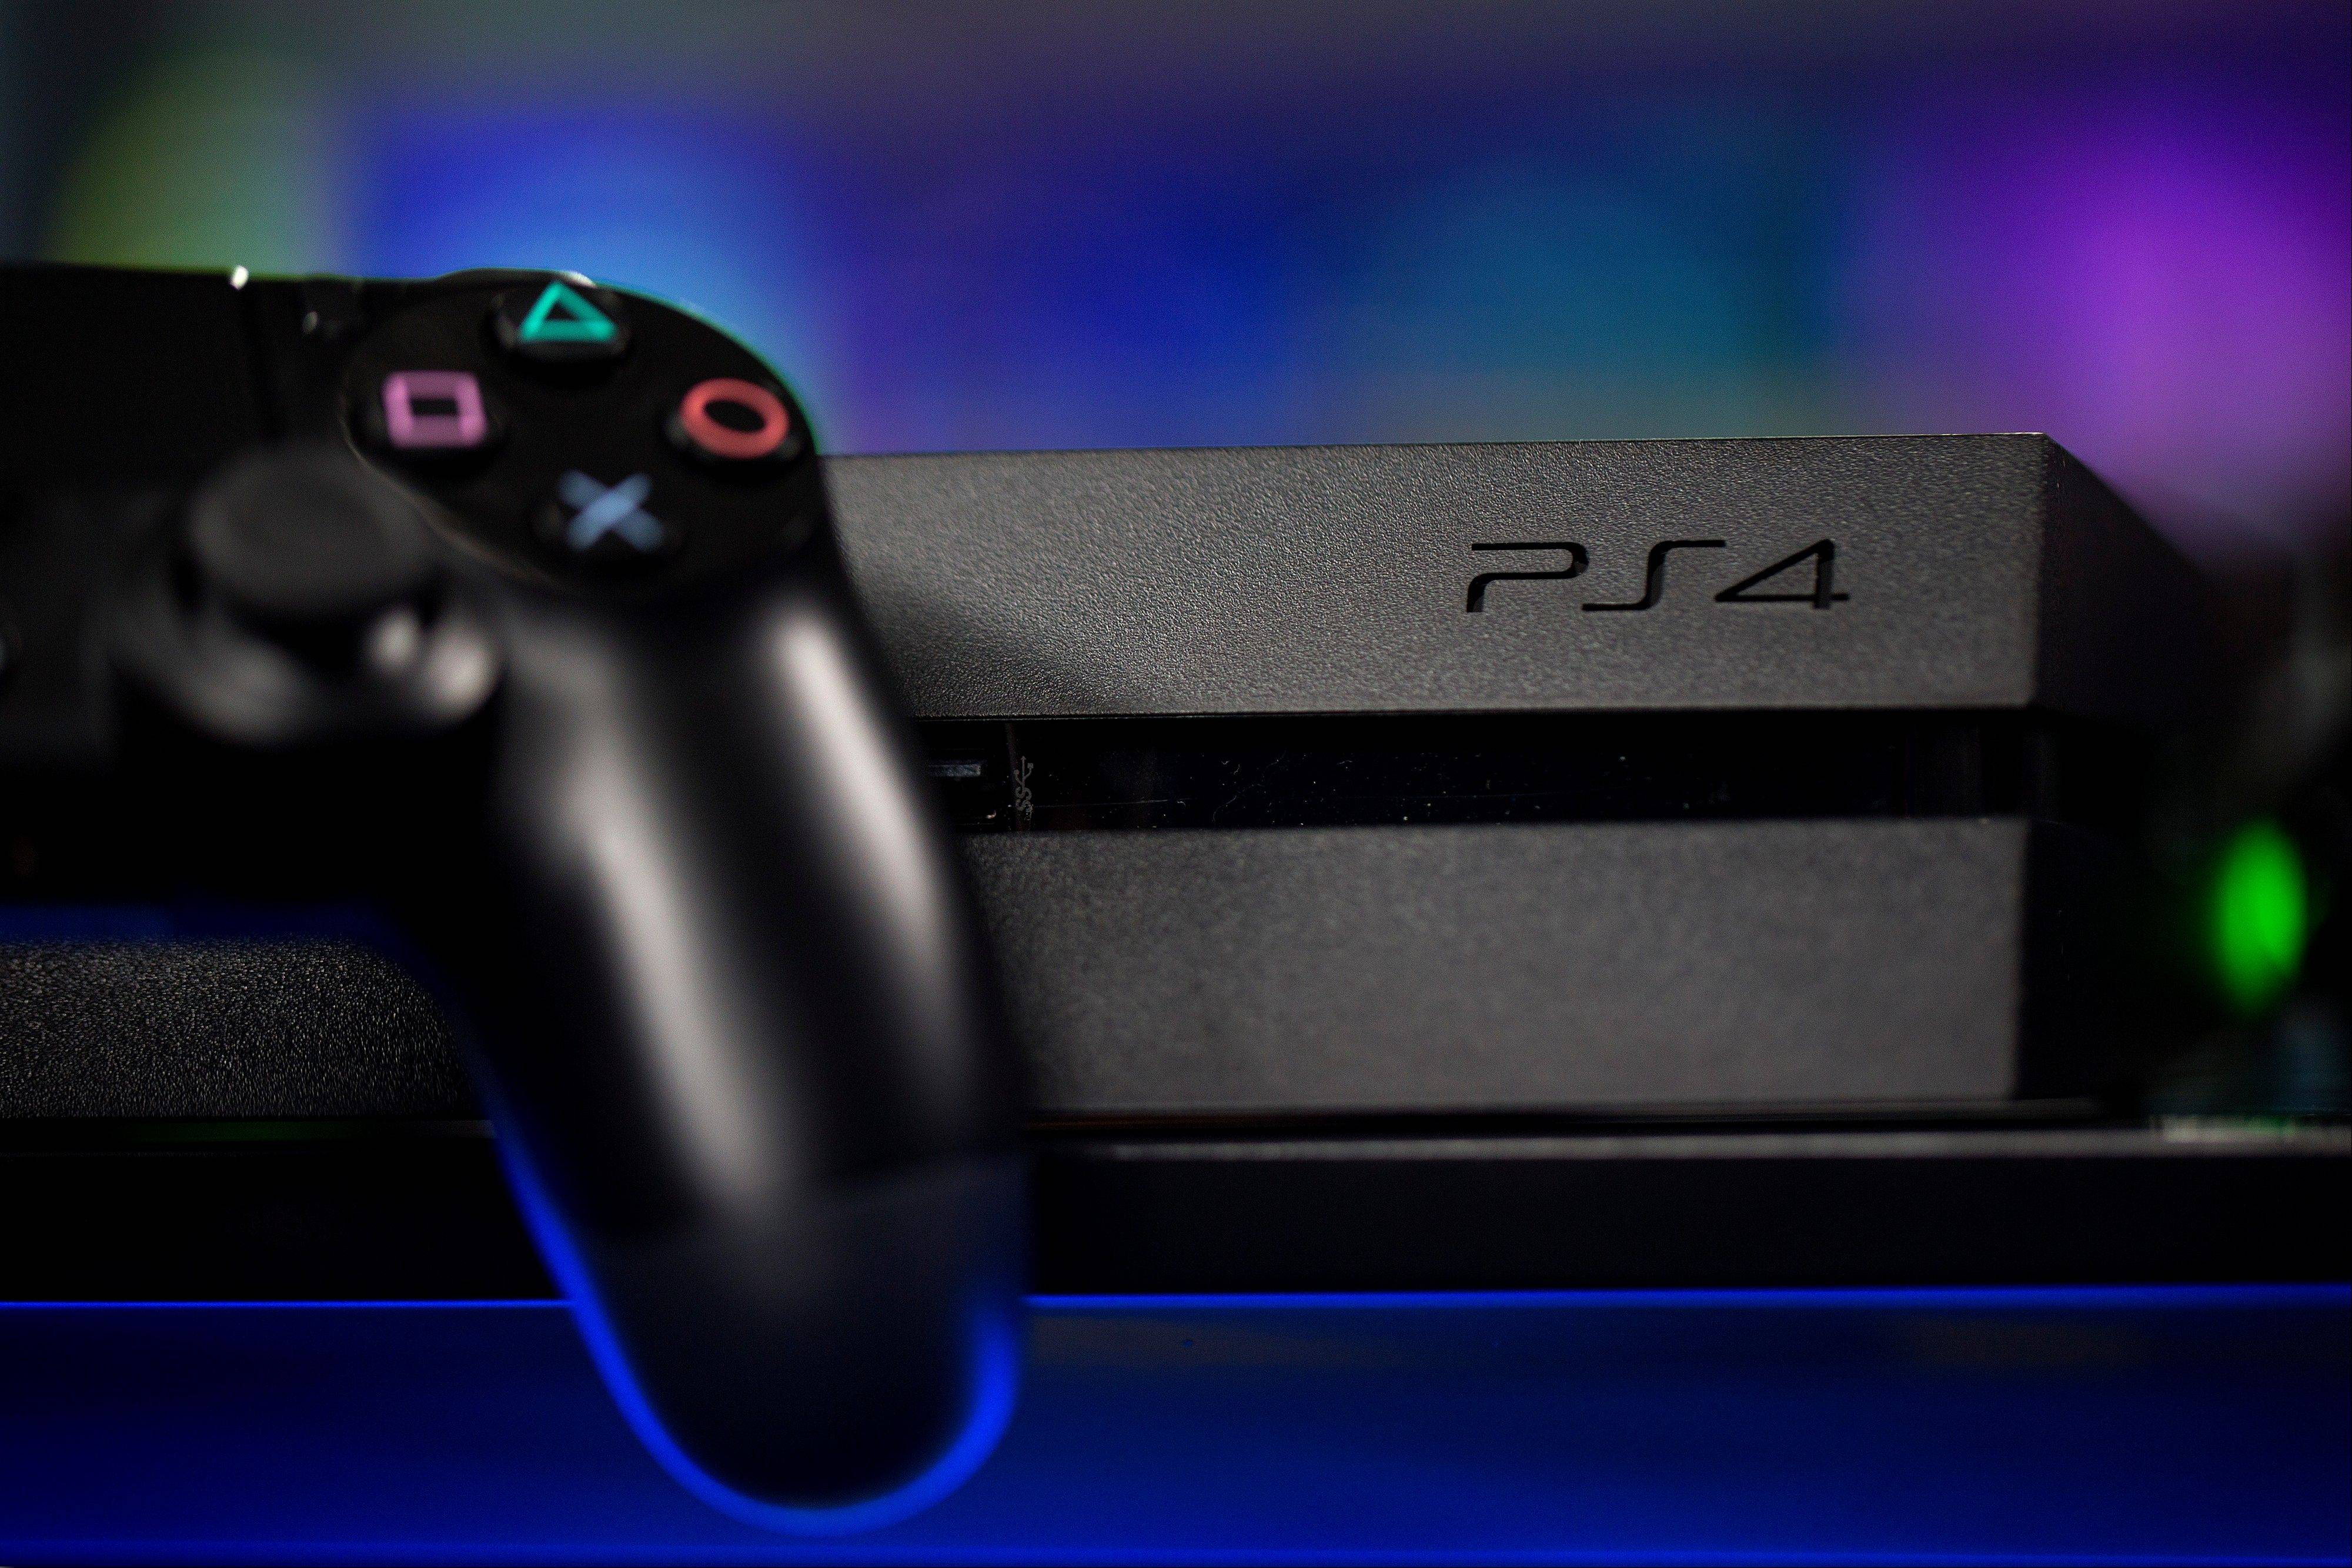 Sony is confident the Playstation 4 console can meet analysts� sales estimates of 3 million units by year-end, exploiting an early advantage over Microsoft Corp.�s Xbox One.